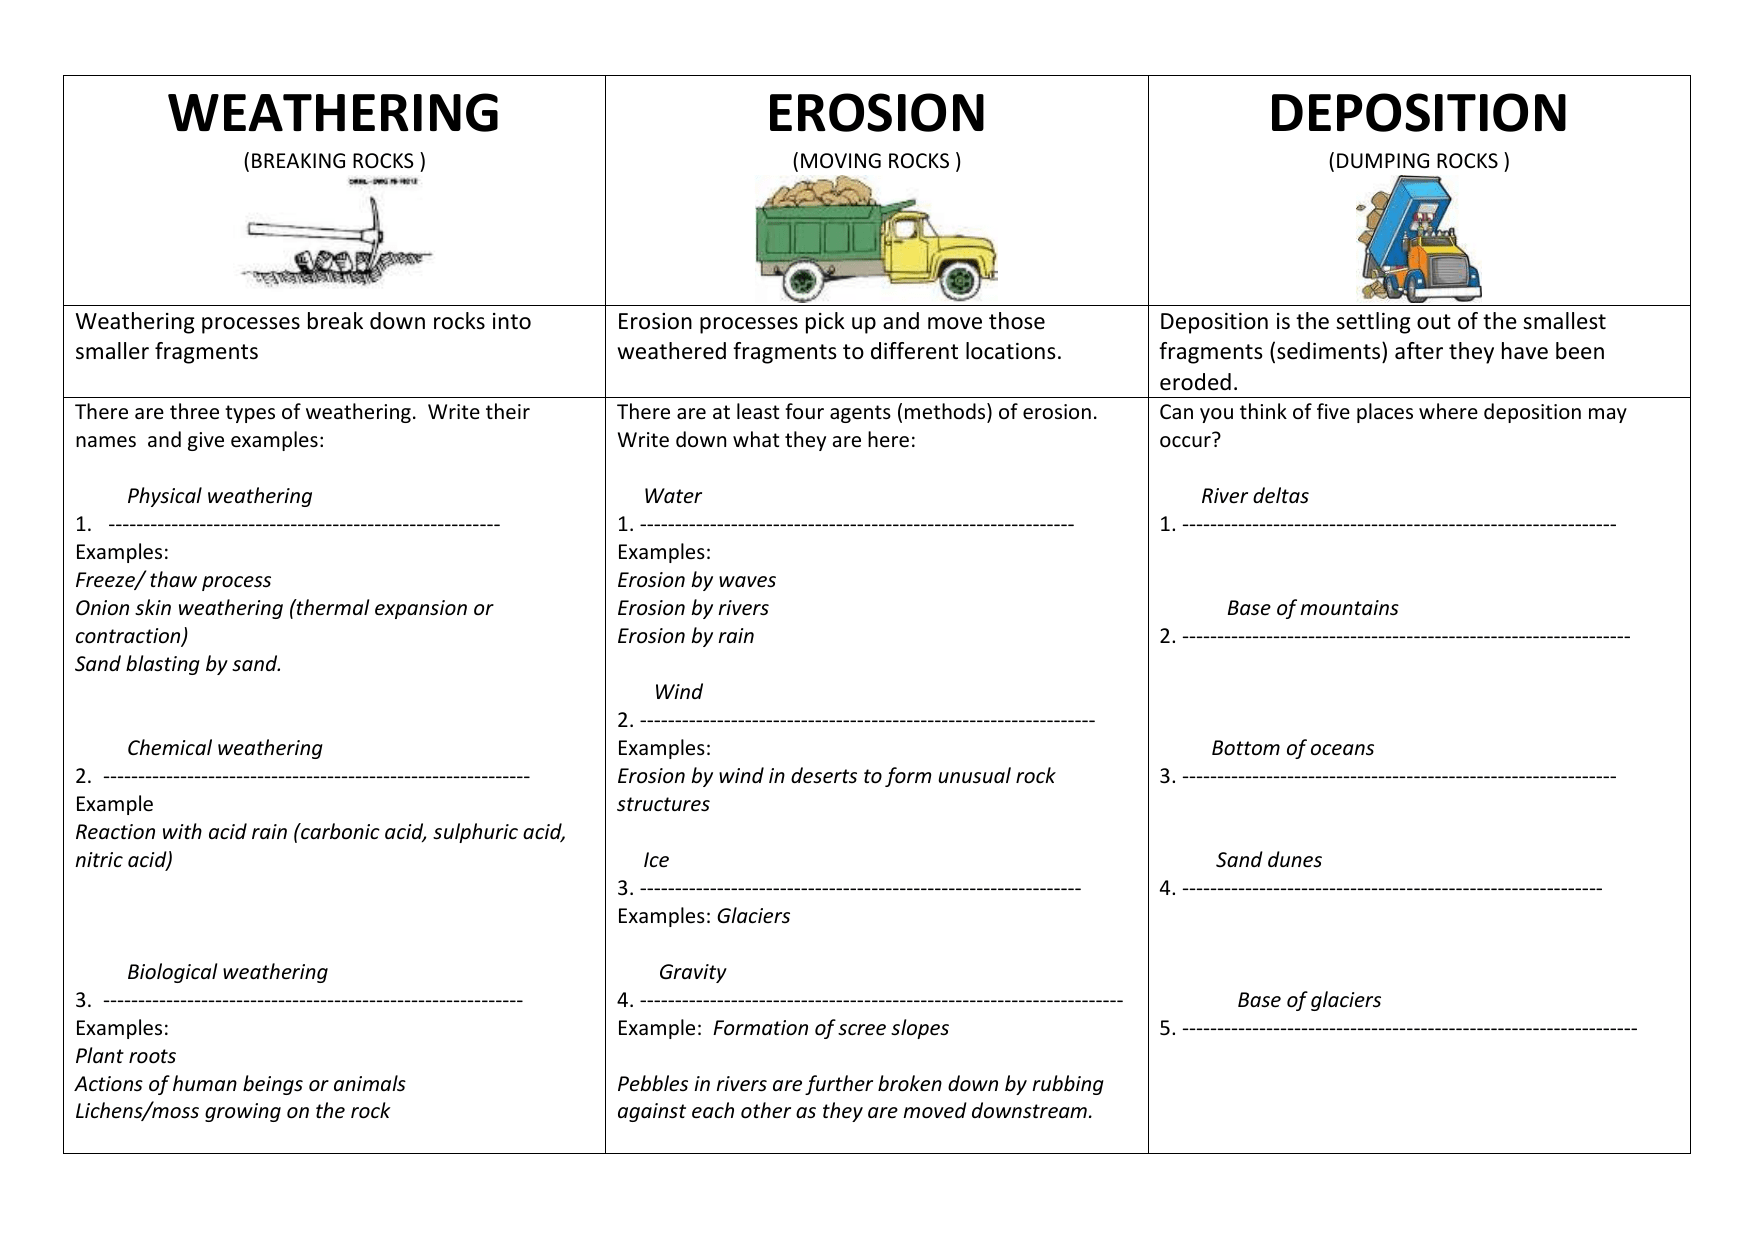 Weathering Erosion Deposition Summary Questions And Answers